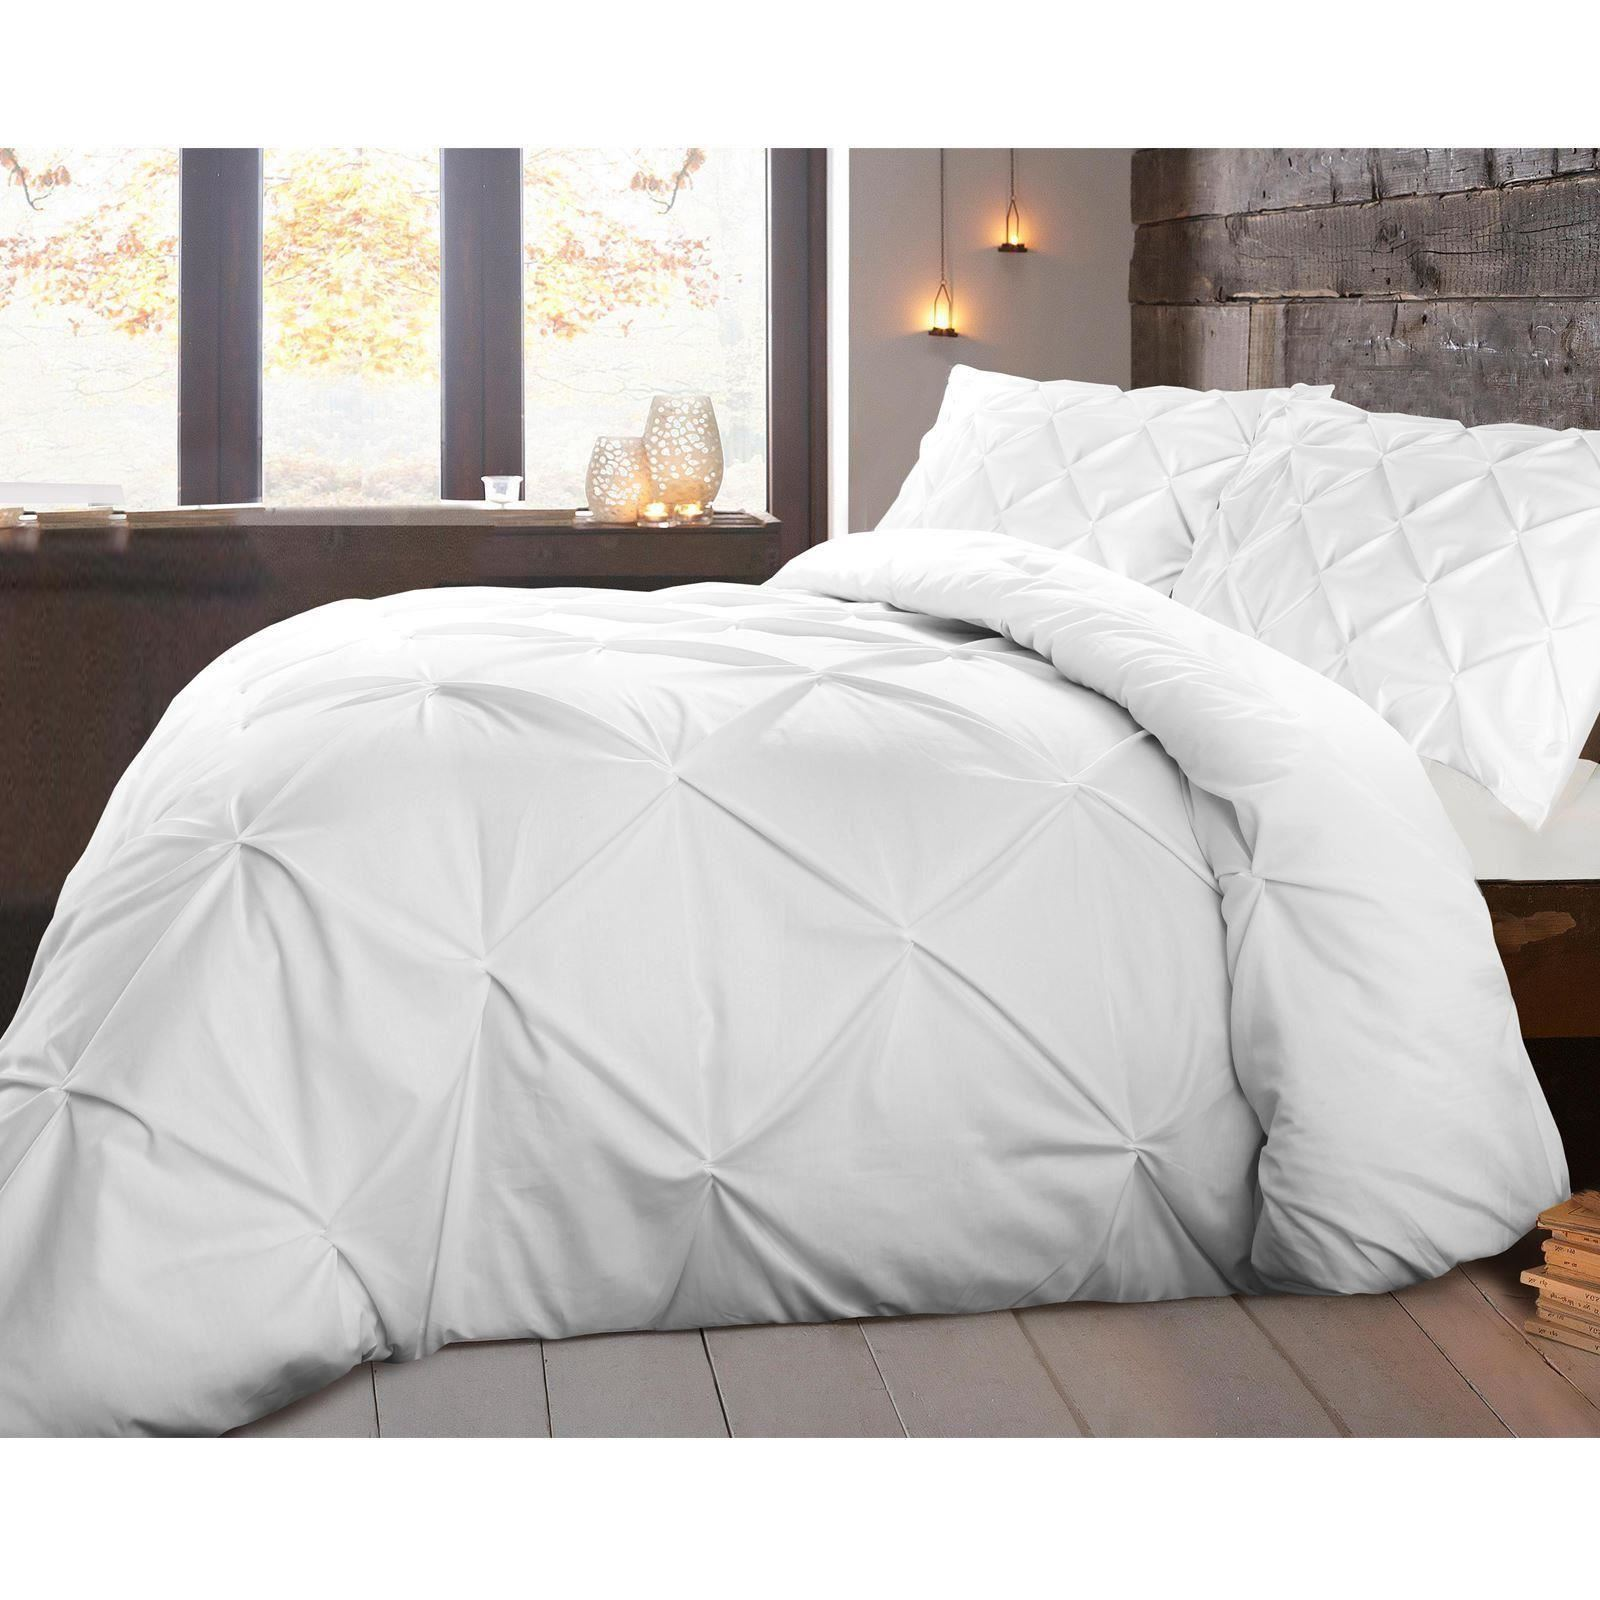 buy pinched set cotton king pinch duvet linen sunnyrain pleat luxury china bedding online pieces b wholesale imitated font cover from silk bed white grey